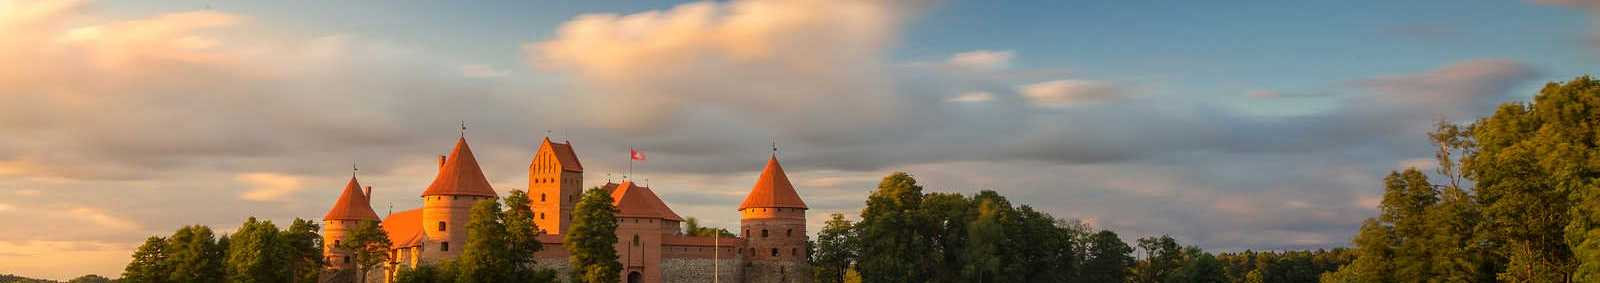 Old castle at sunset time, Trakai, Lithuania